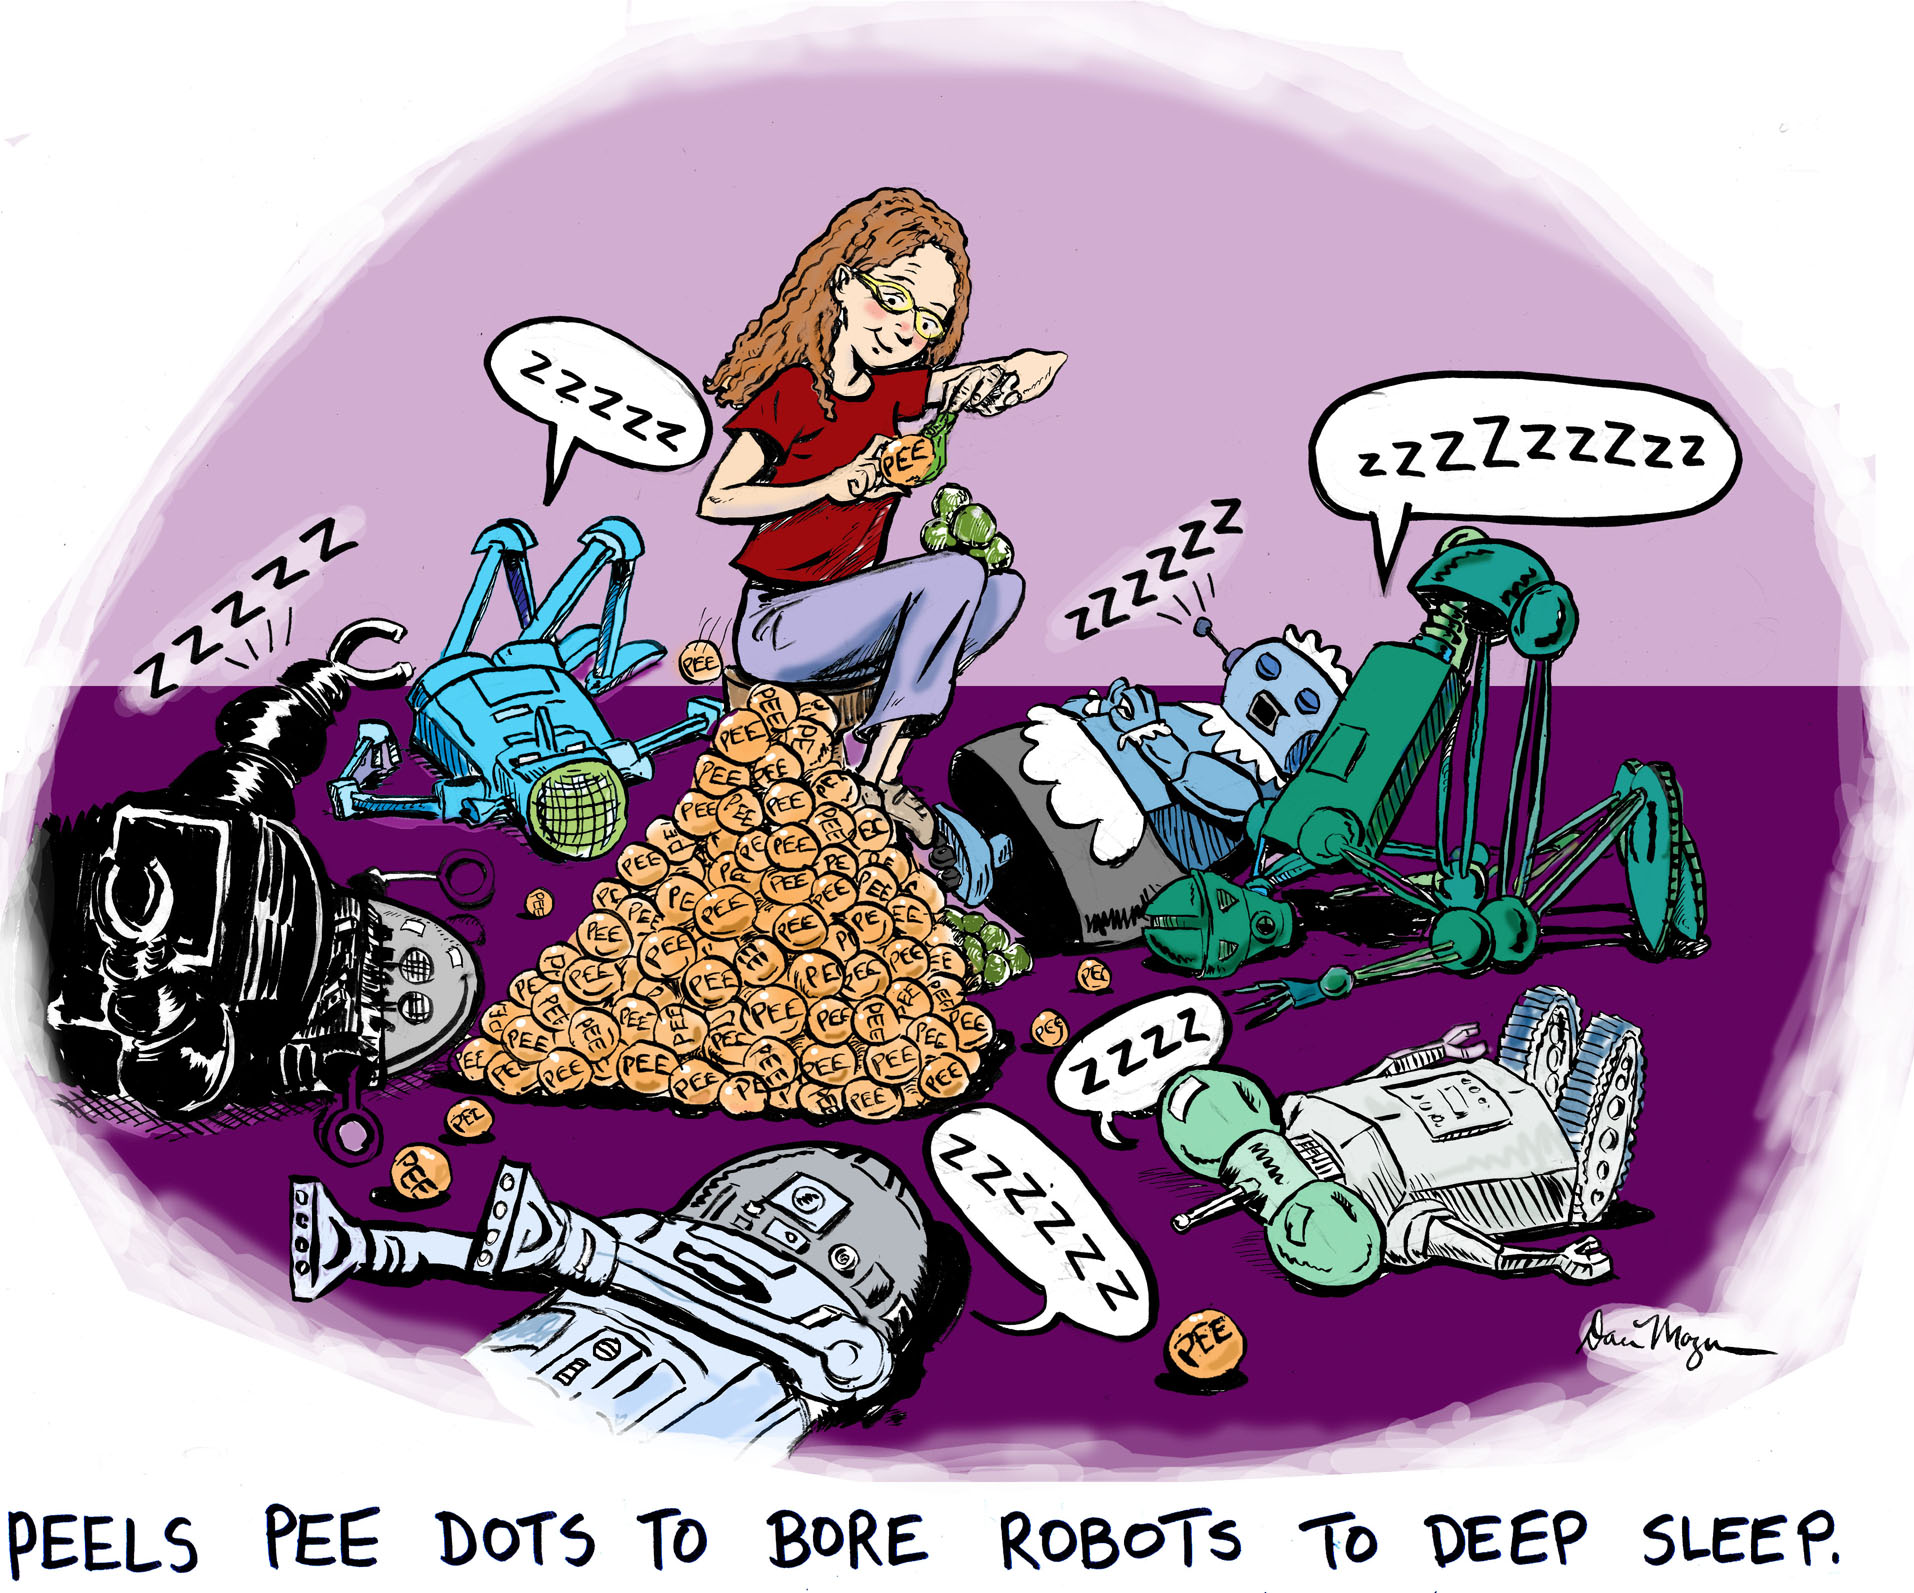 BORED ROBOTS reduced